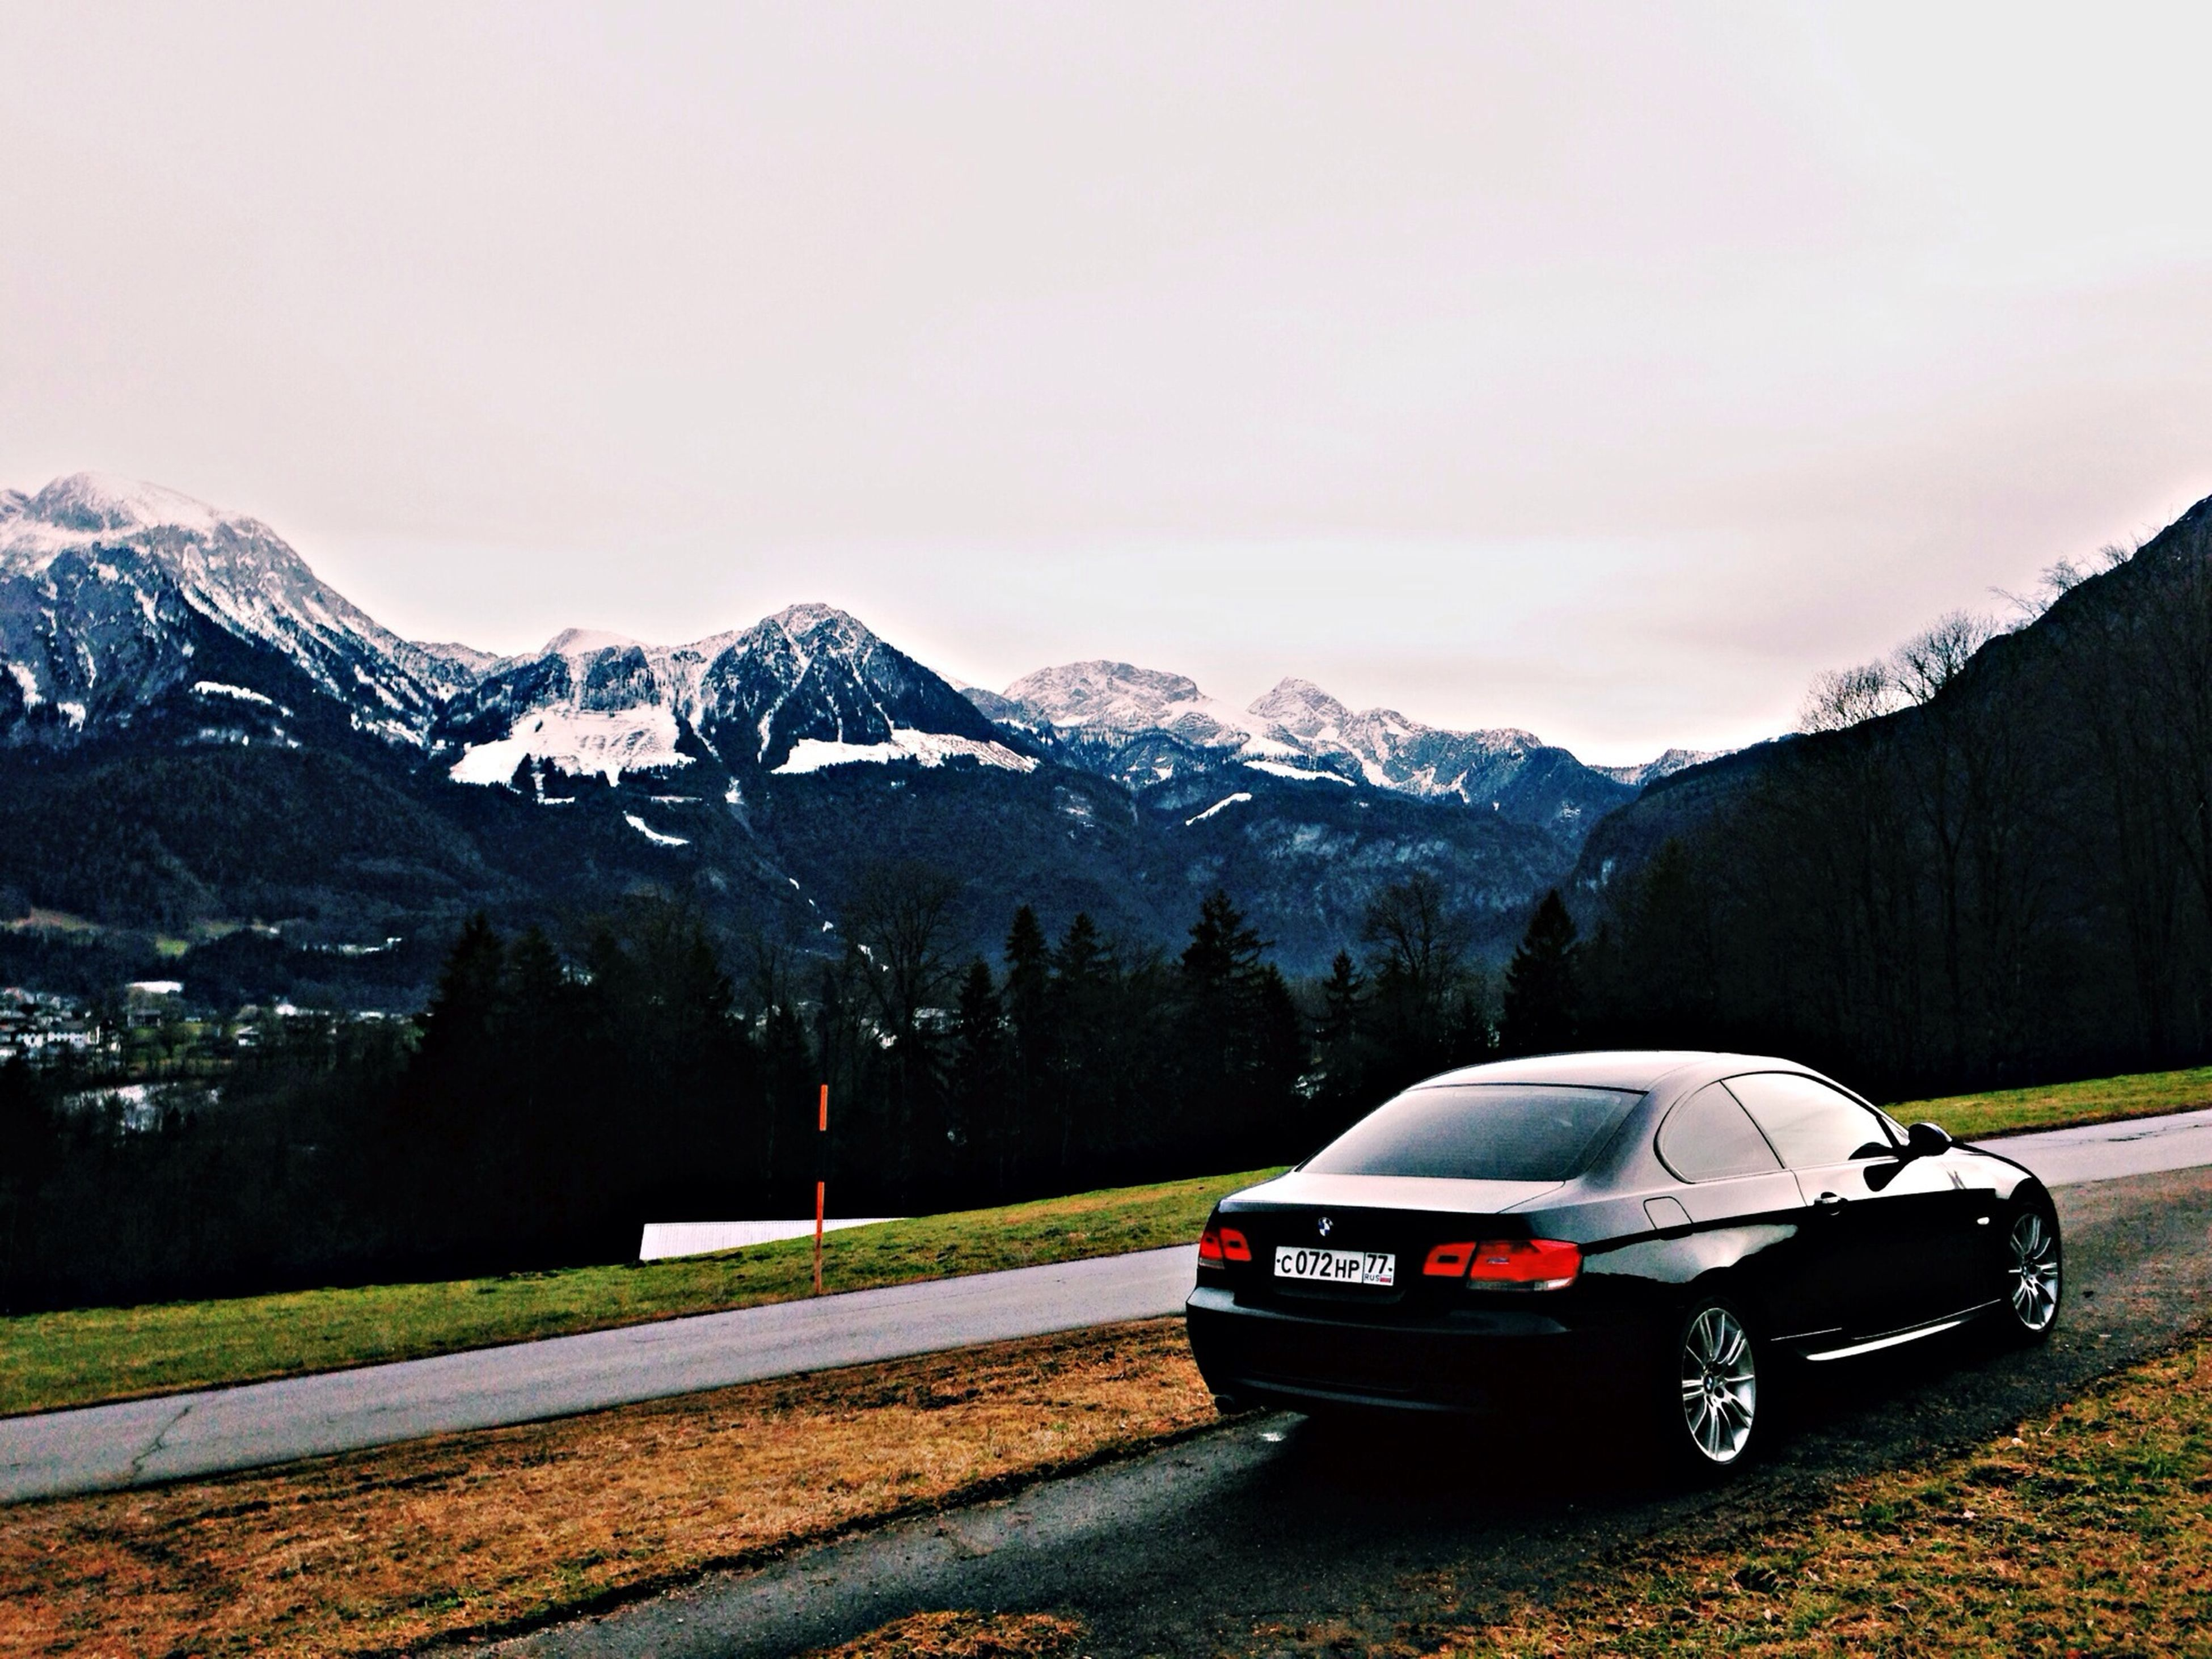 mountain, snow, winter, cold temperature, mountain range, car, snowcapped mountain, transportation, land vehicle, season, landscape, scenics, weather, beauty in nature, tranquil scene, mode of transport, road, sky, nature, tranquility